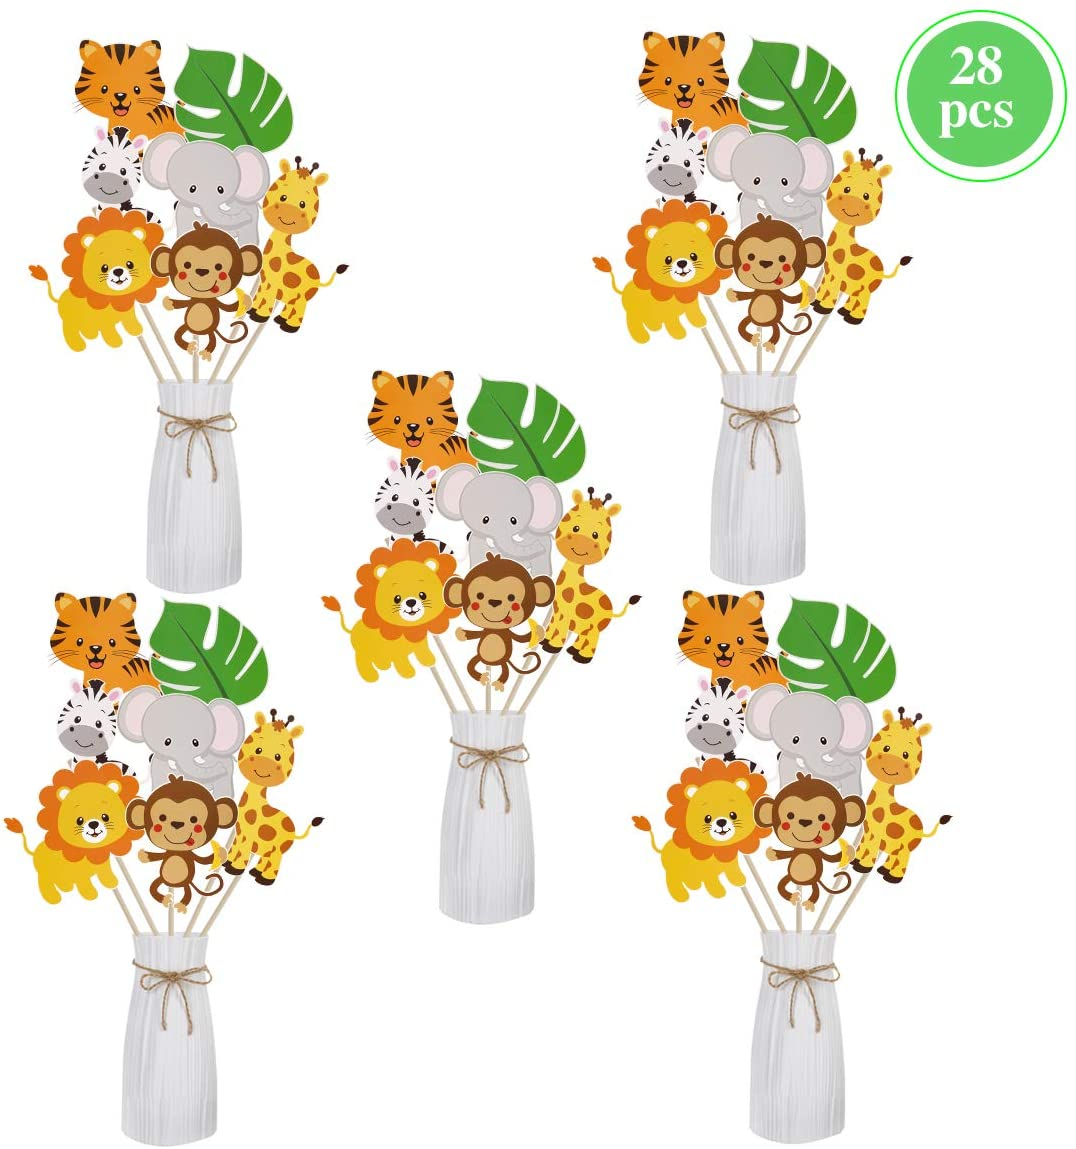 Jungle Safari Party Decorations Supplies - Jungle Animal Birthday Party Centerpiece Sticks, DIY Safari Animals Table Decorations for Baby Shower, Table vase Toppers Birthday Decorations, Jungle Animal Party Favors